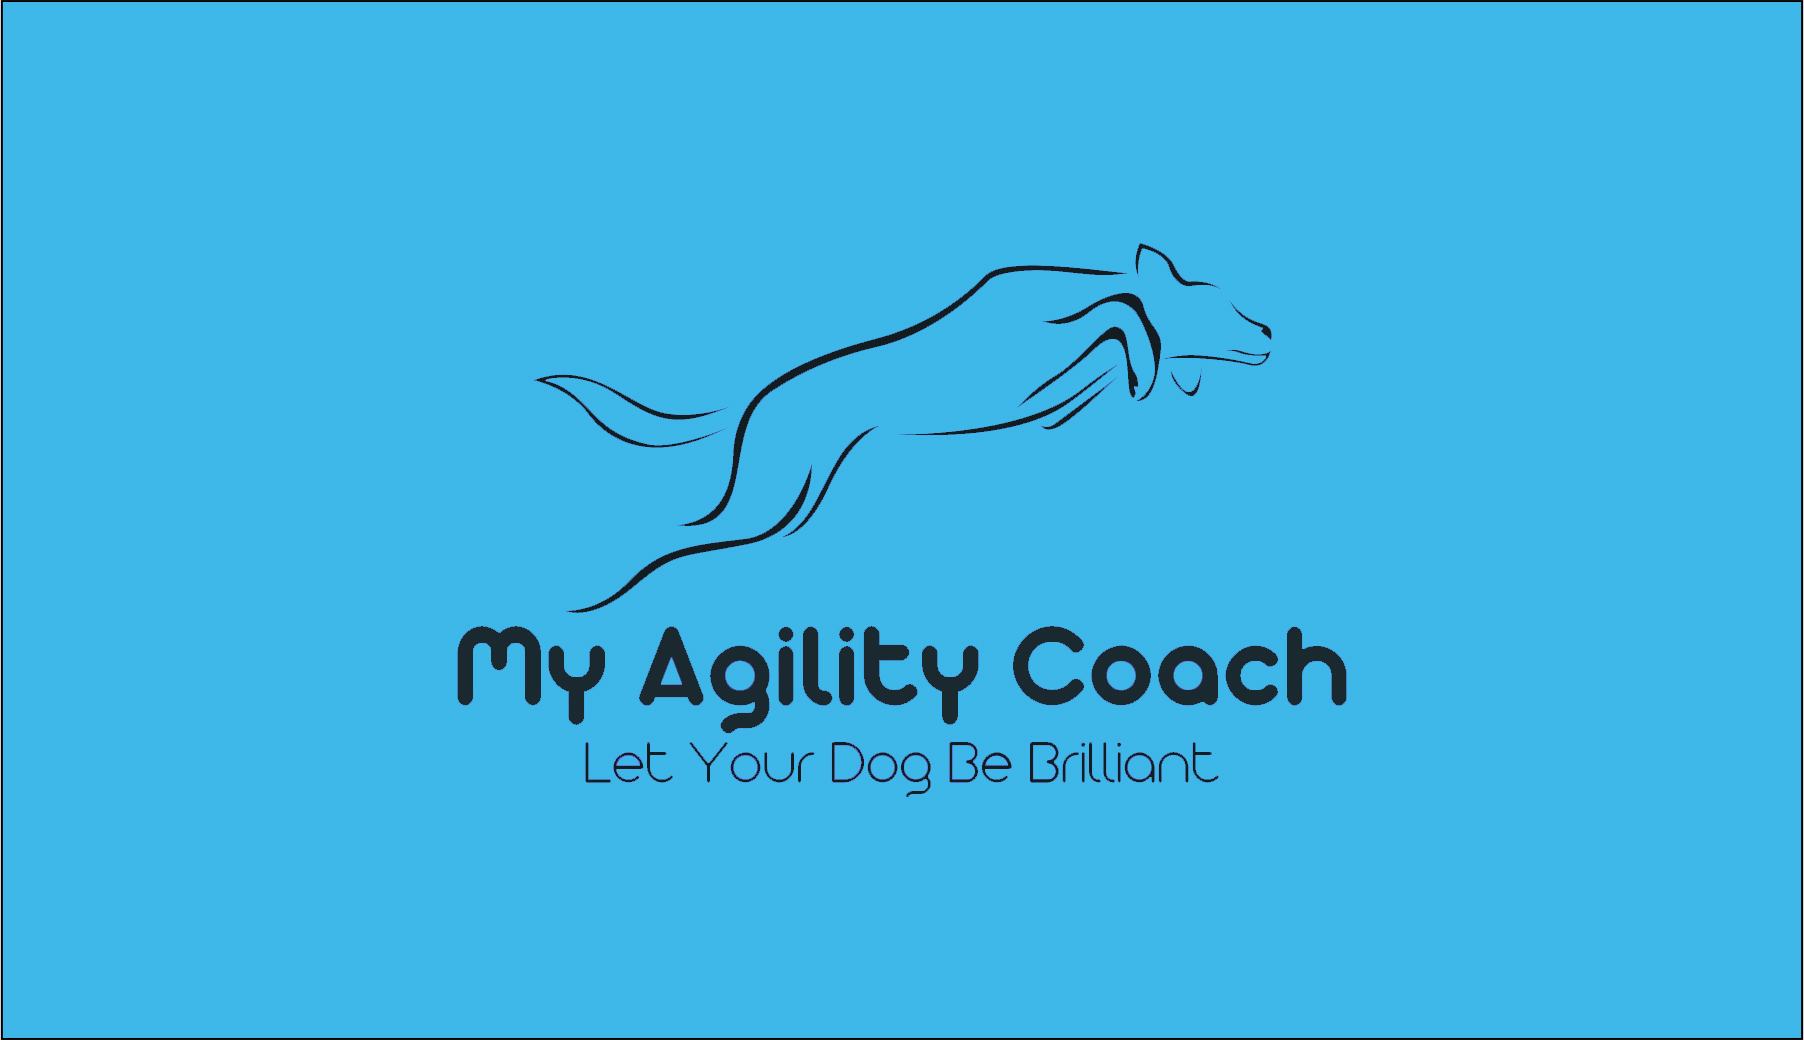 My passion is agility